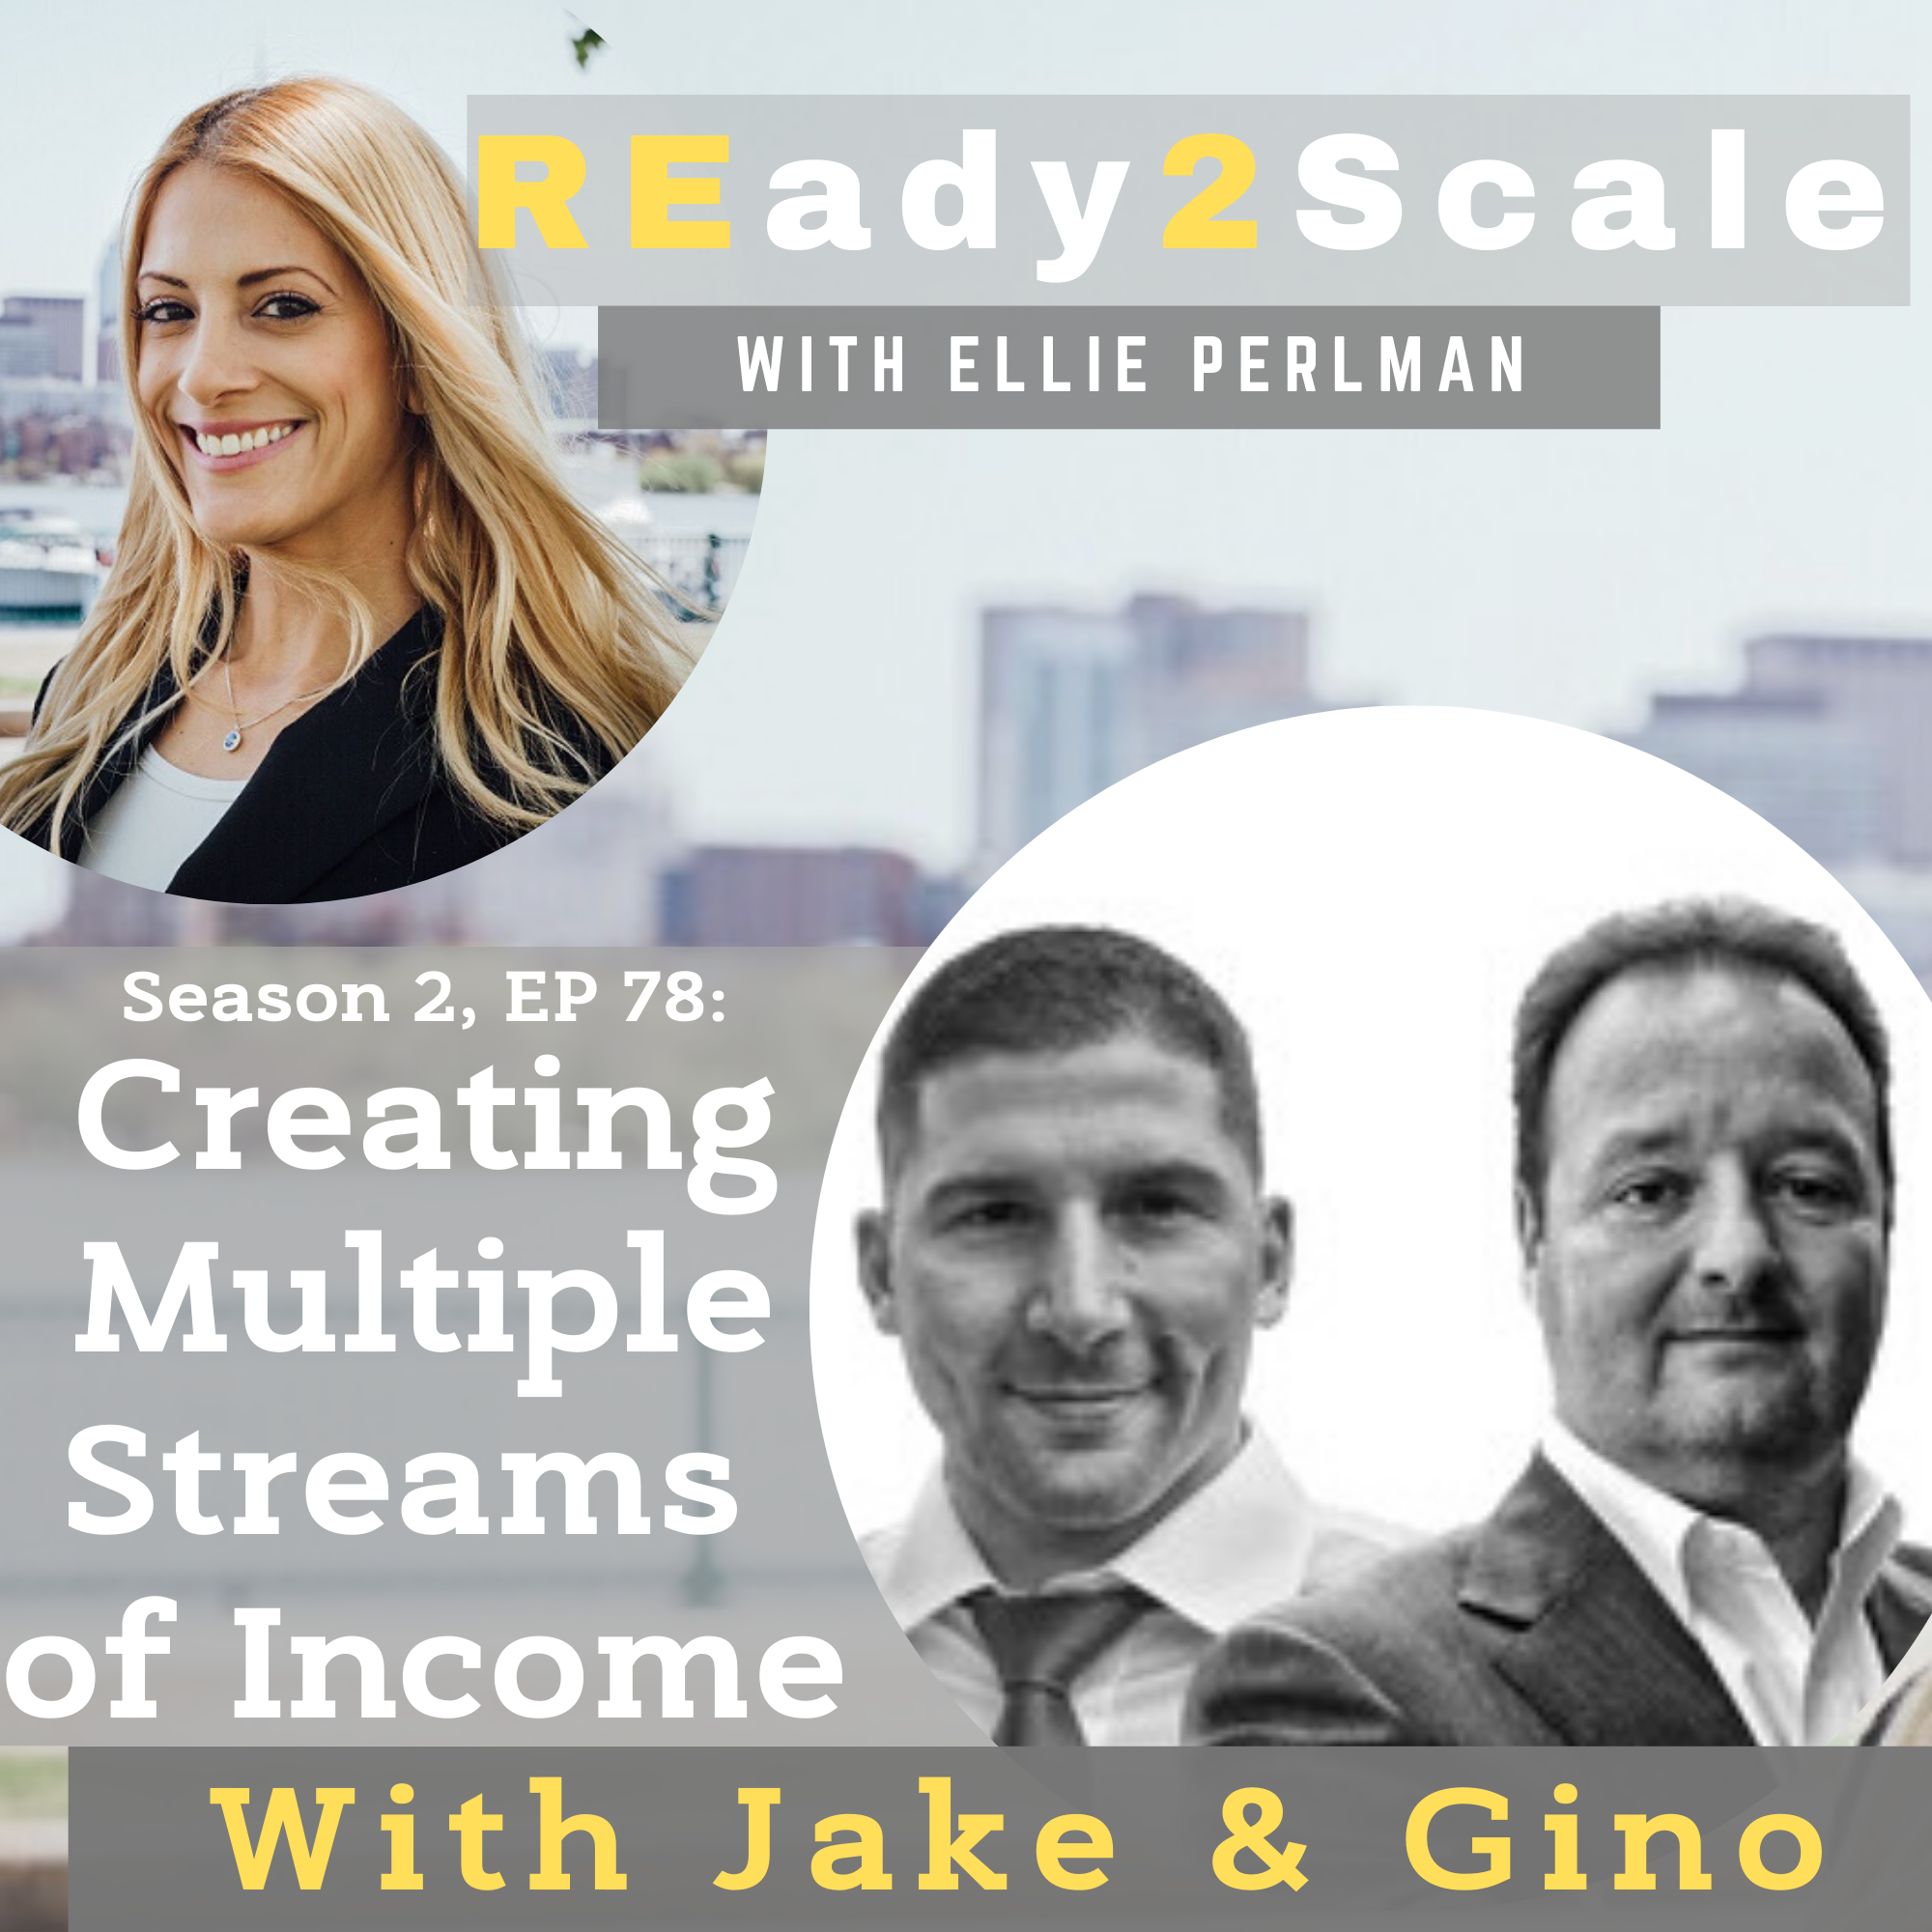 S2 EP 78: Creating Multiple Streams of Income with Jake and Gino